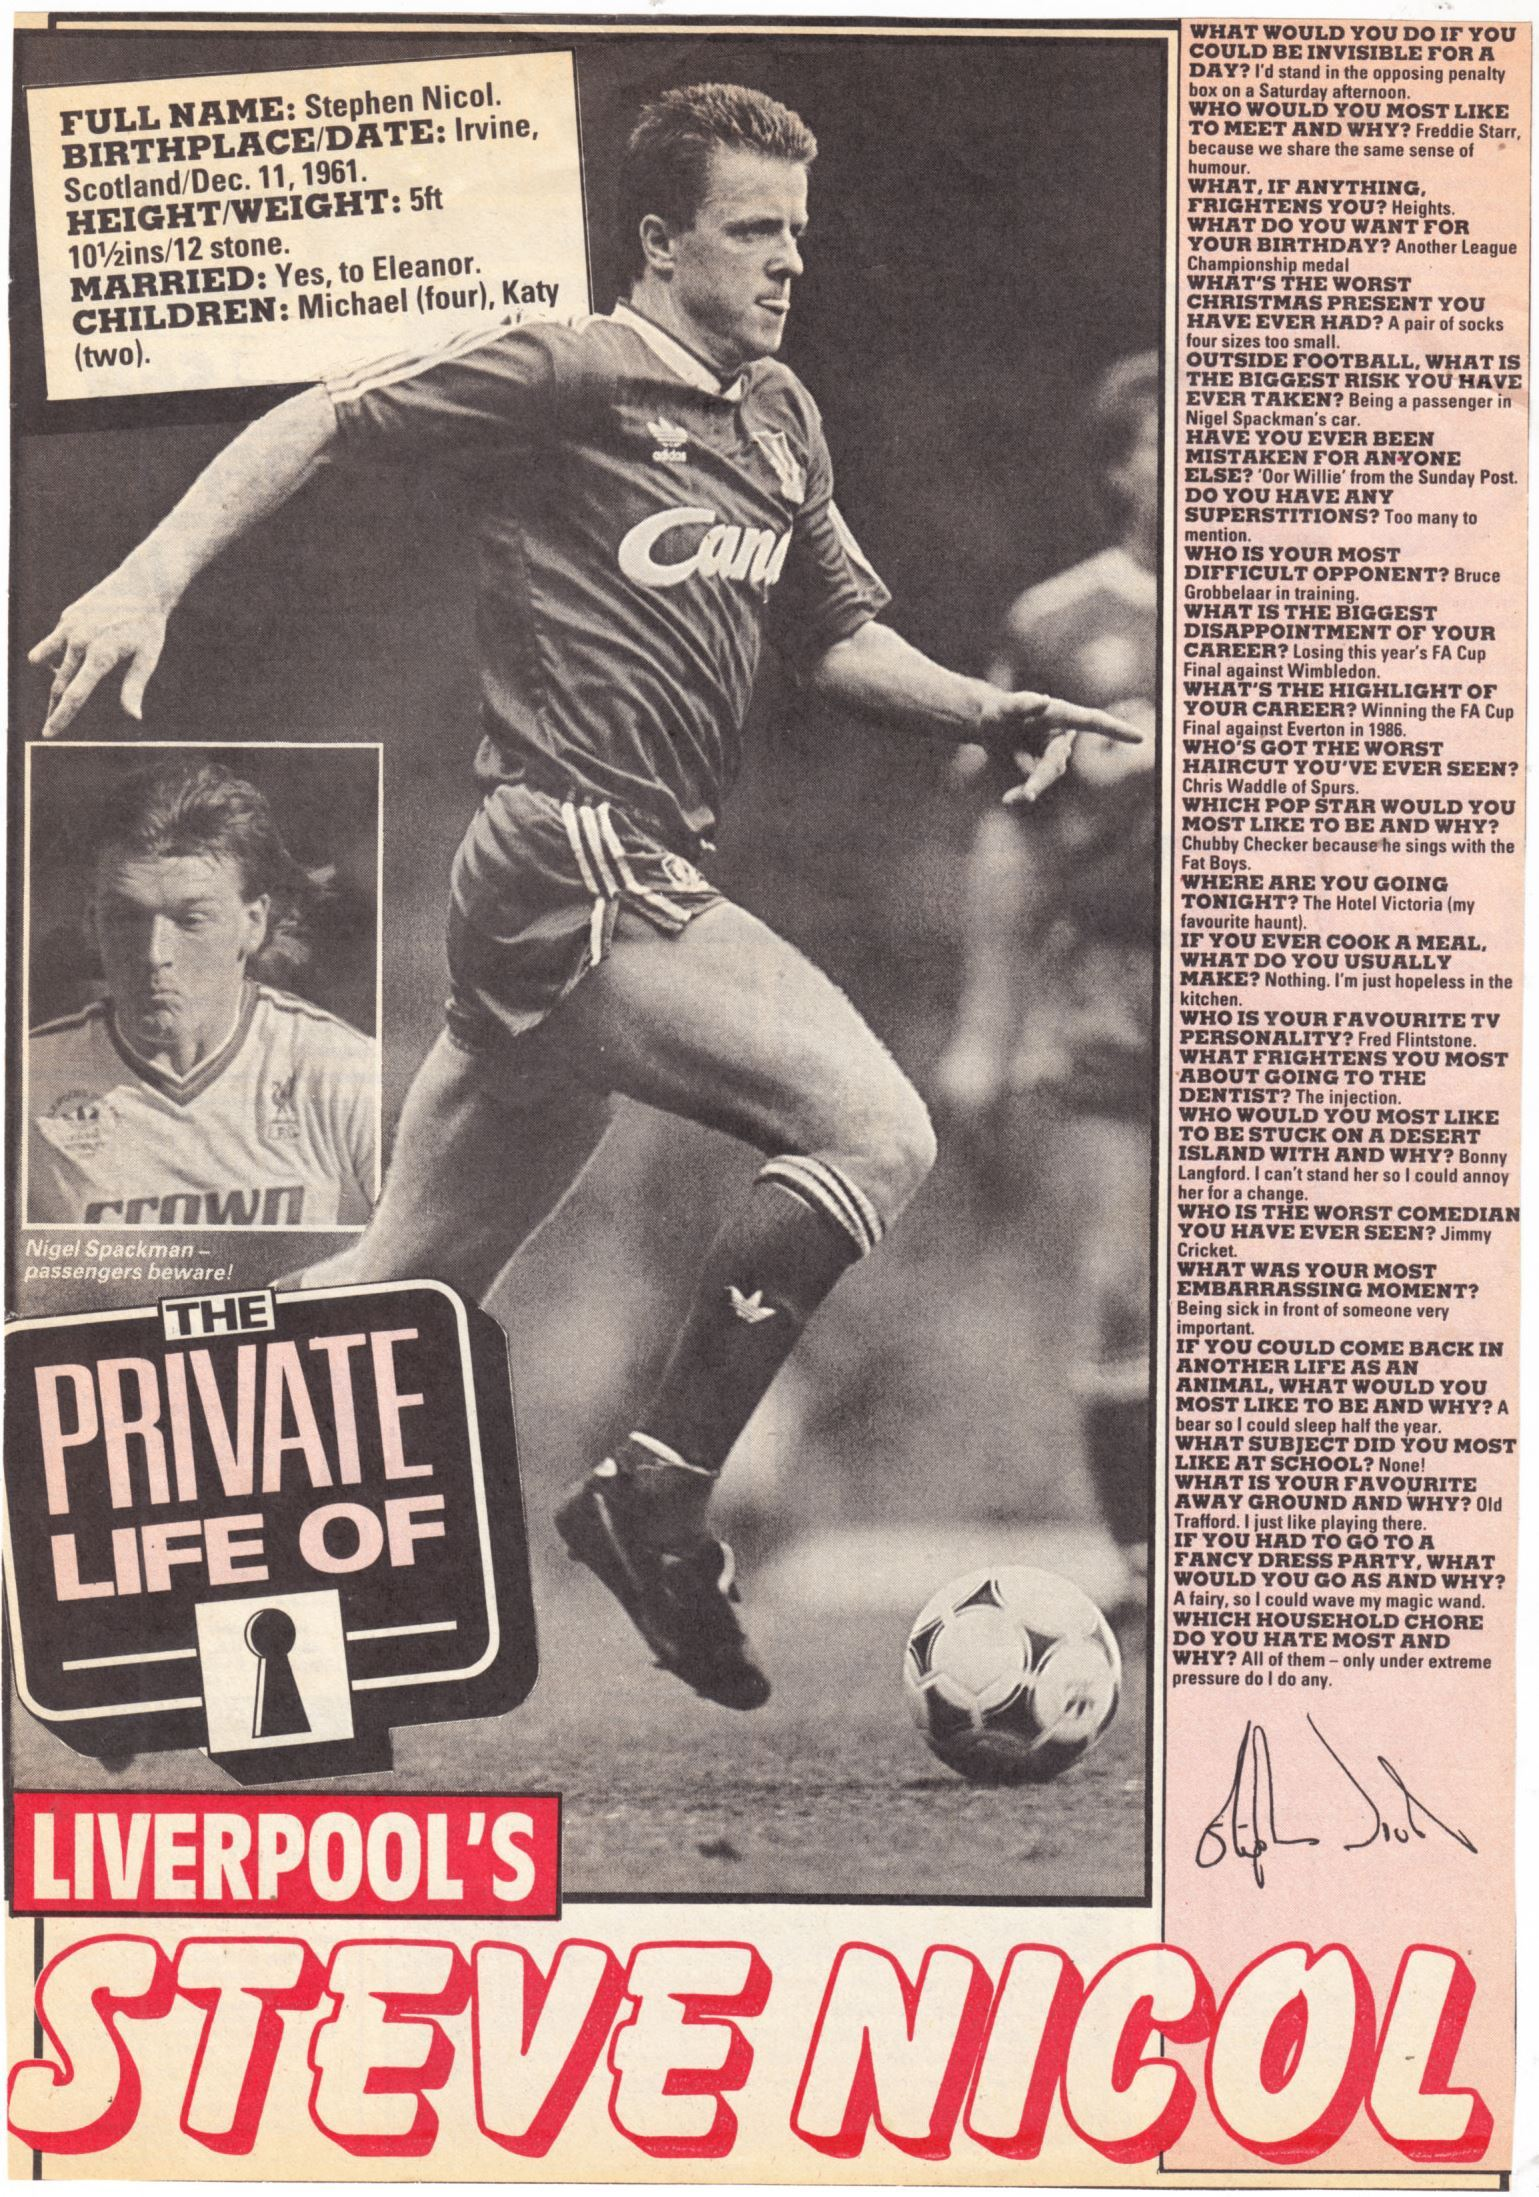 The Private Life of Steve Nicol - 1988